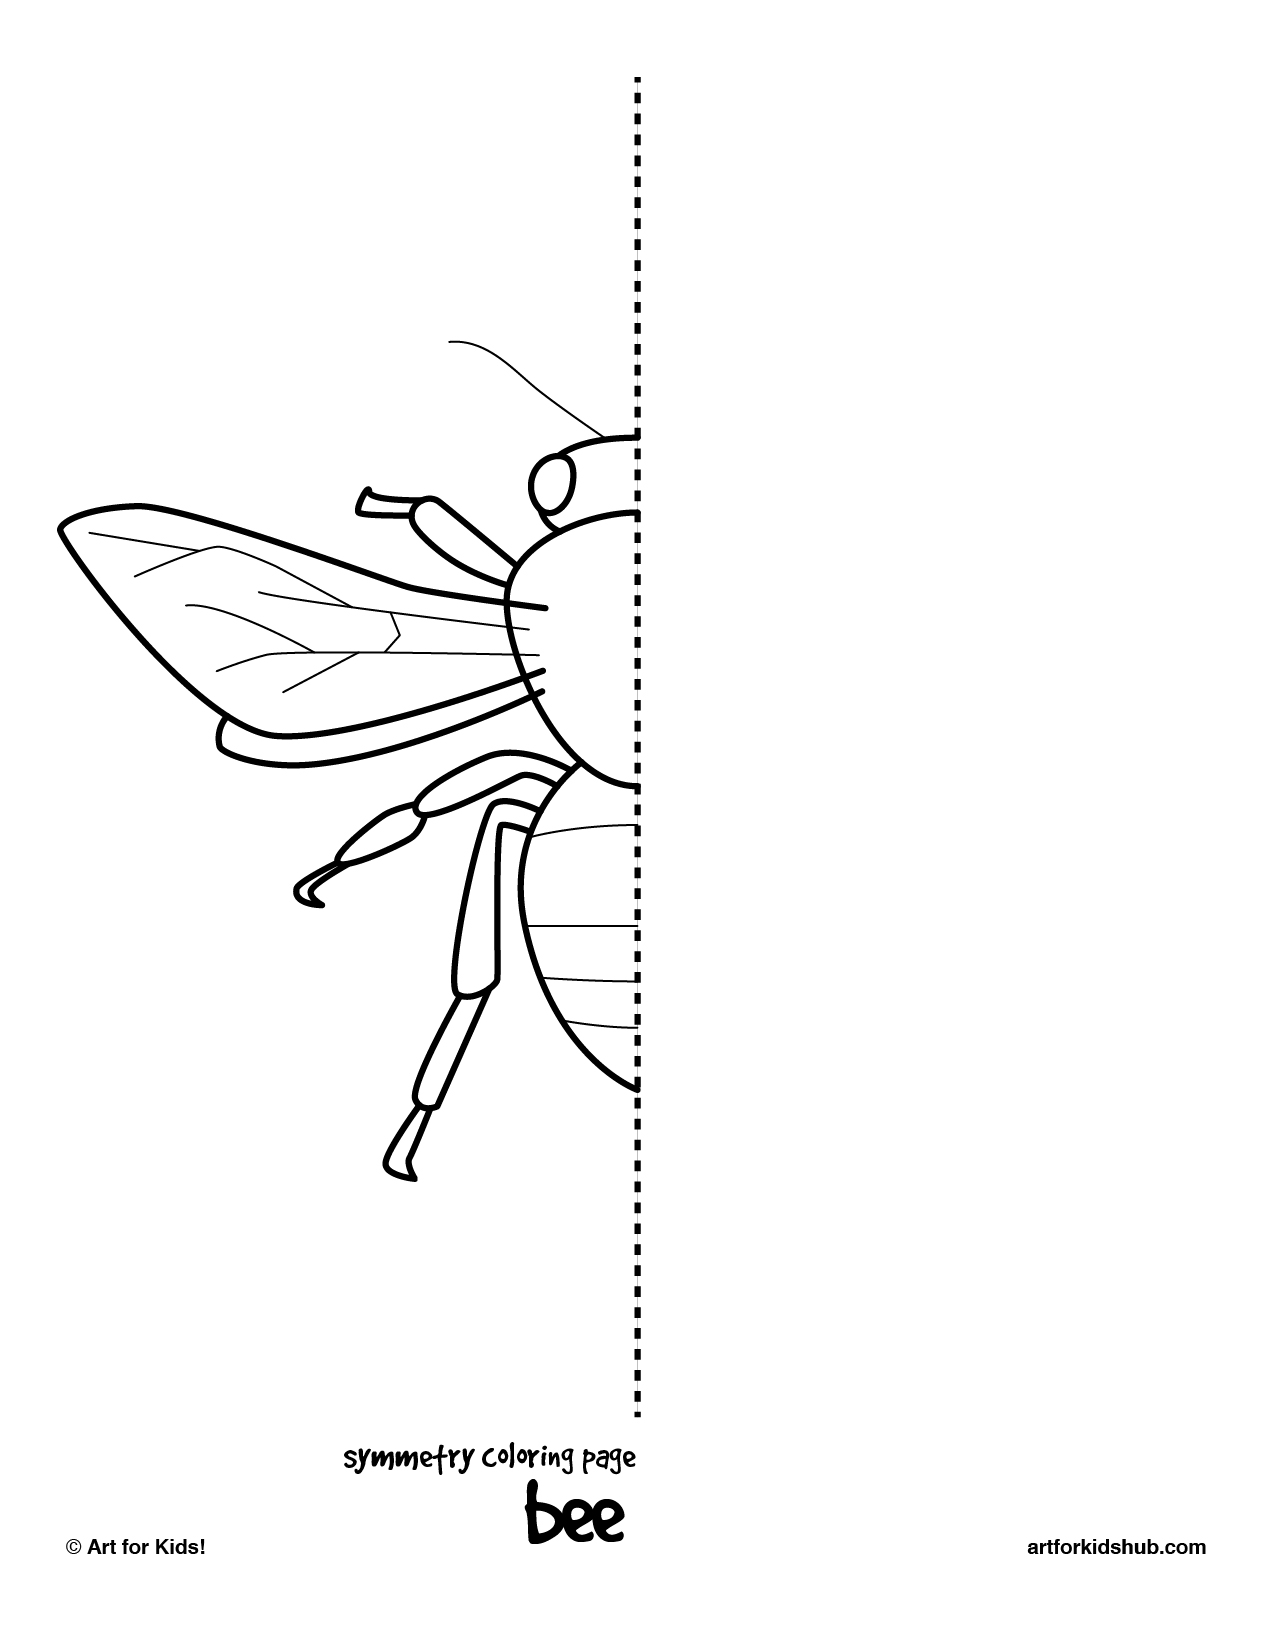 grasshopper insect diagram 7 pin wiring dodge 10 free coloring pages - bug symmetry art for kids hub